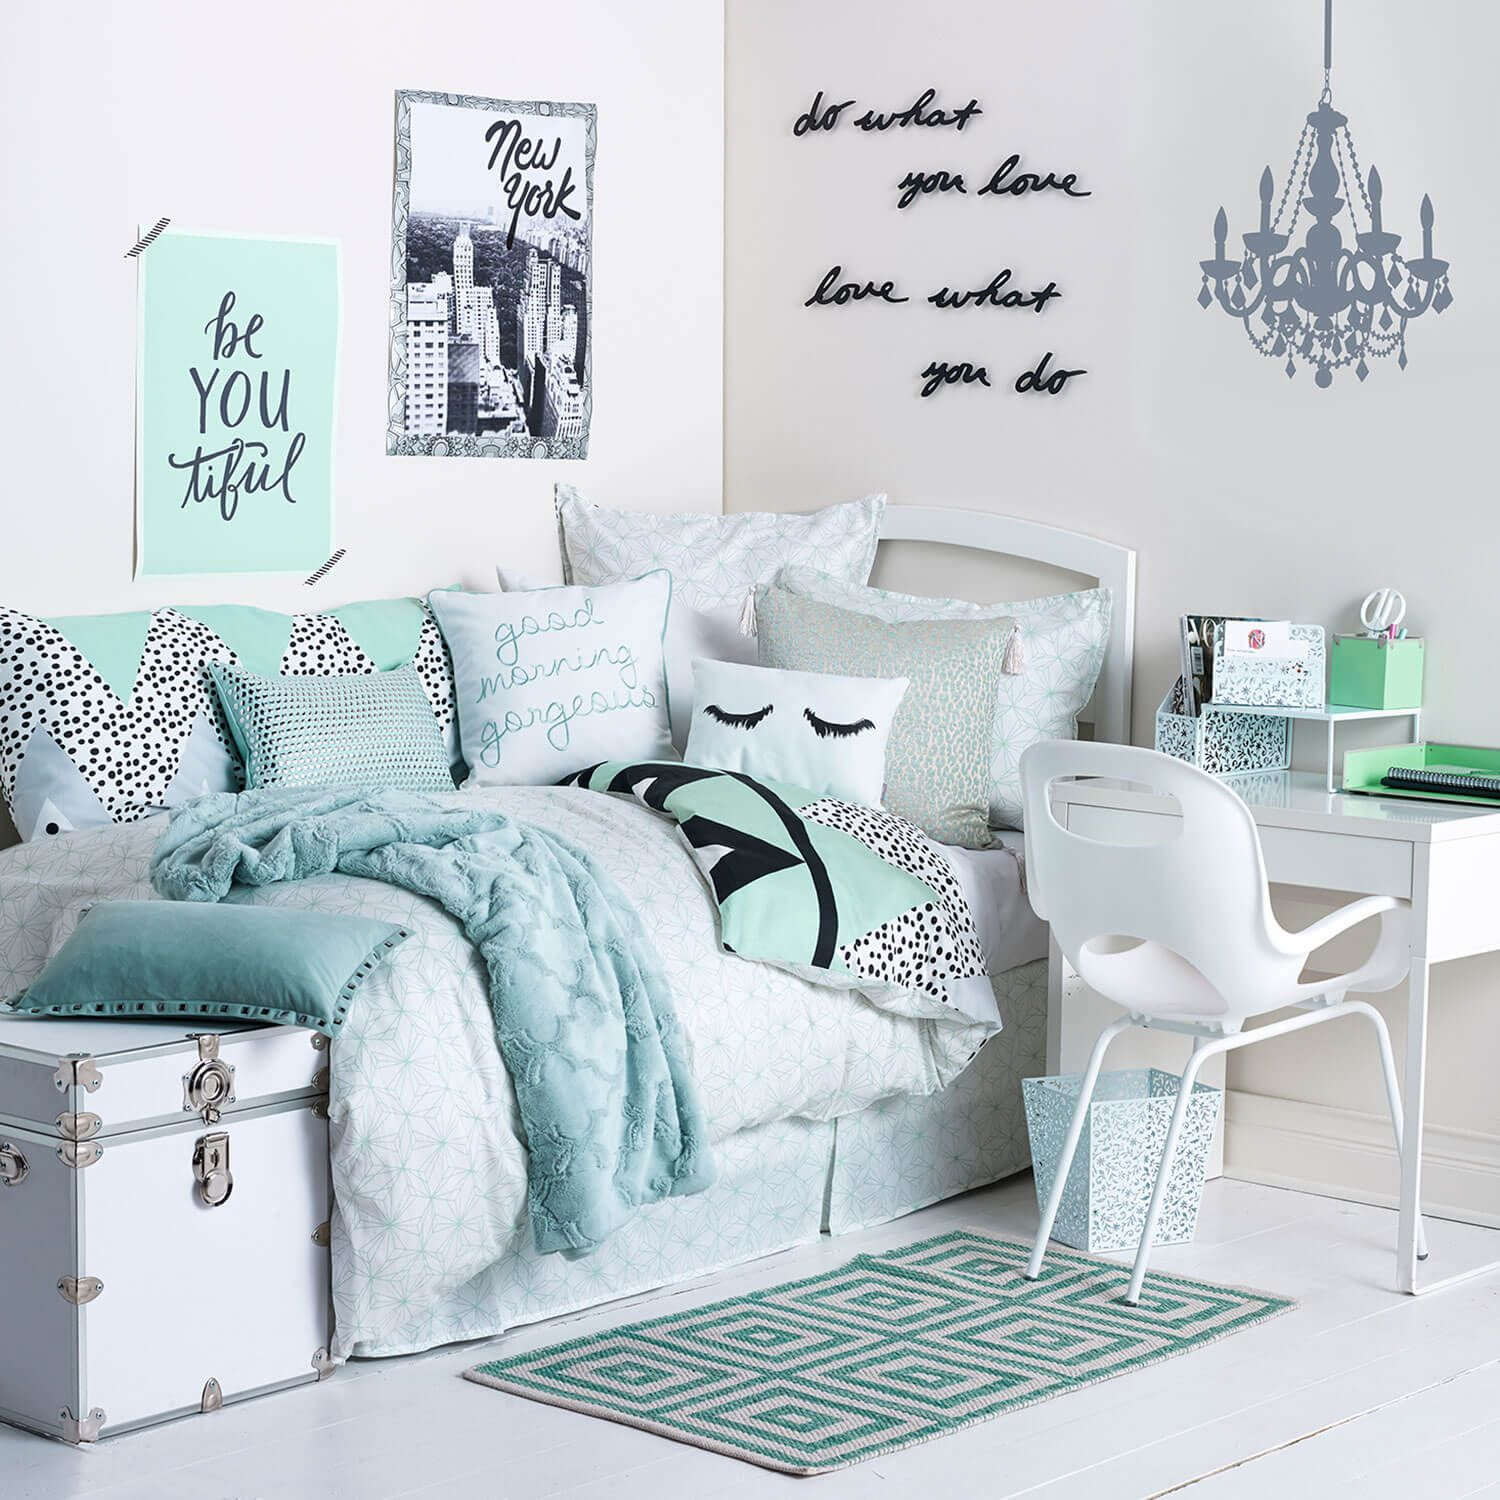 Tween Girls Room Decor Uptown Girl Room  Available On Dormify  Dorm Bedding Loves